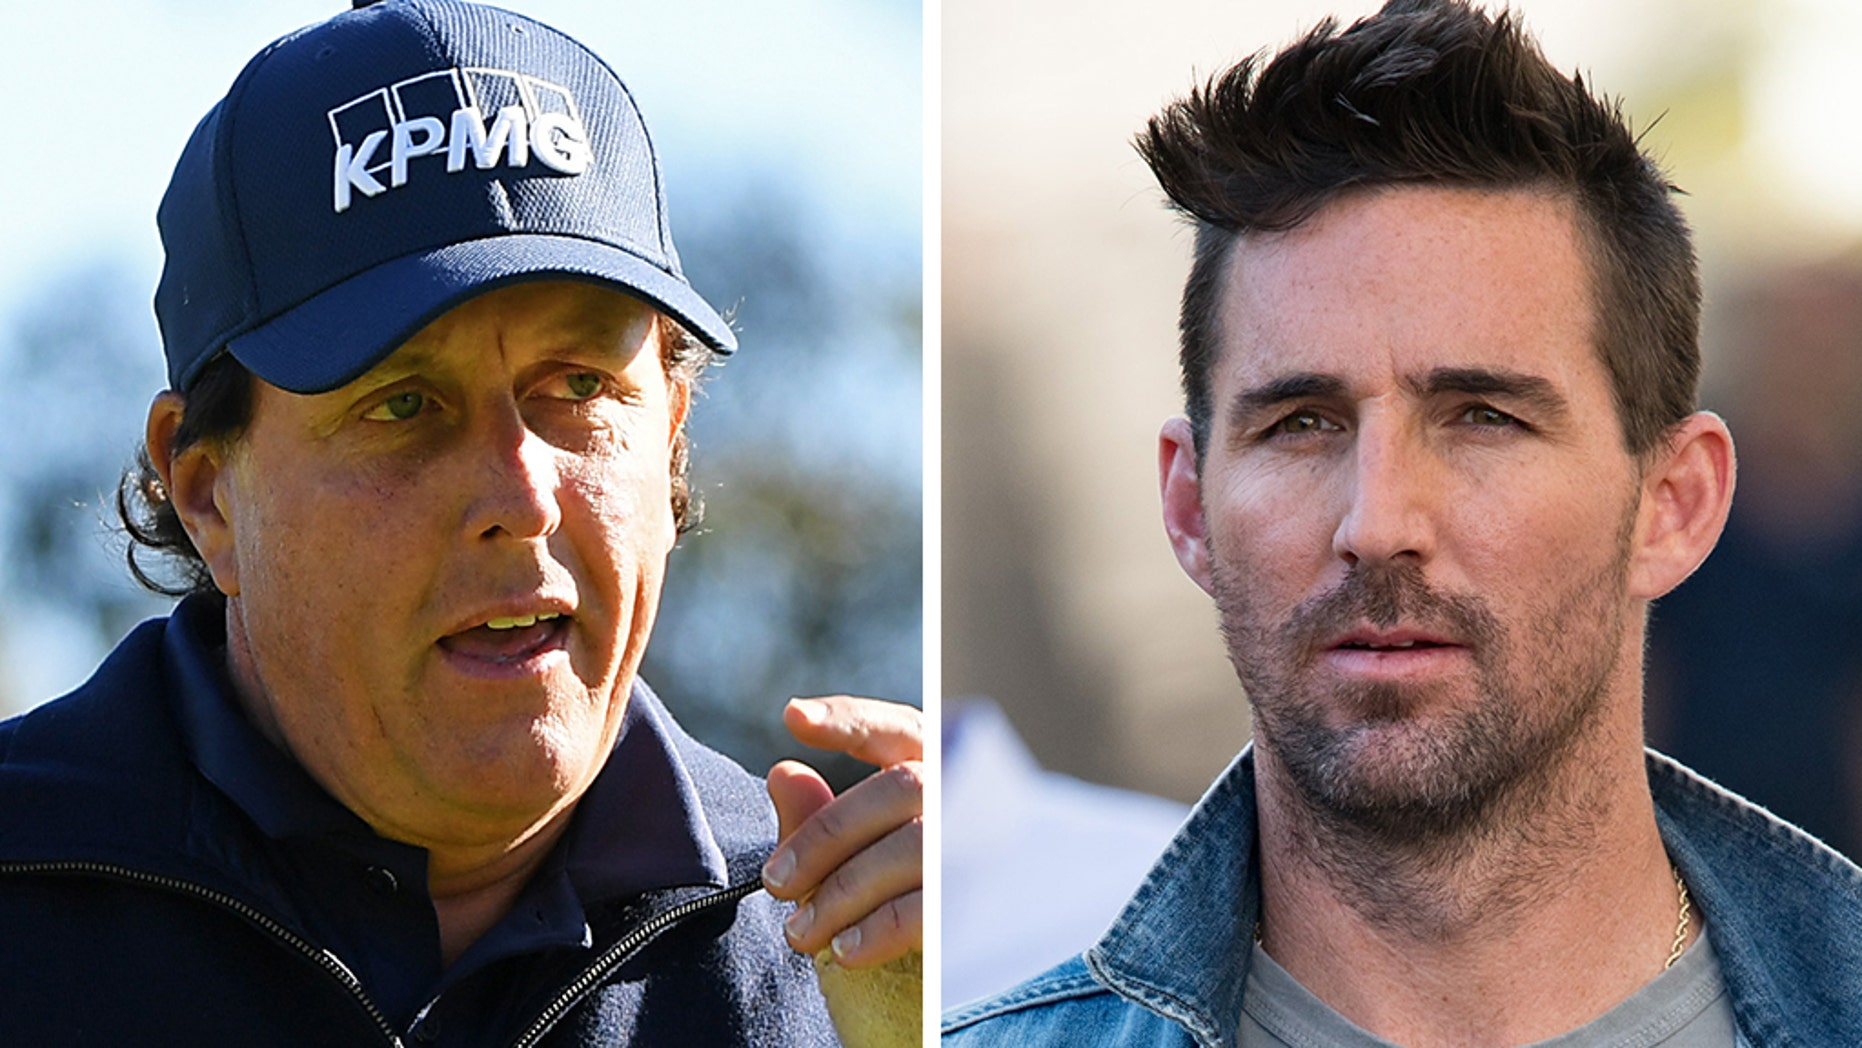 Phil Mickelson, left, and Jake Owen saw at the wedding of golfer Jordan Spate in November, a day after Mikelsson played Tiger Woods at a golf tournament.